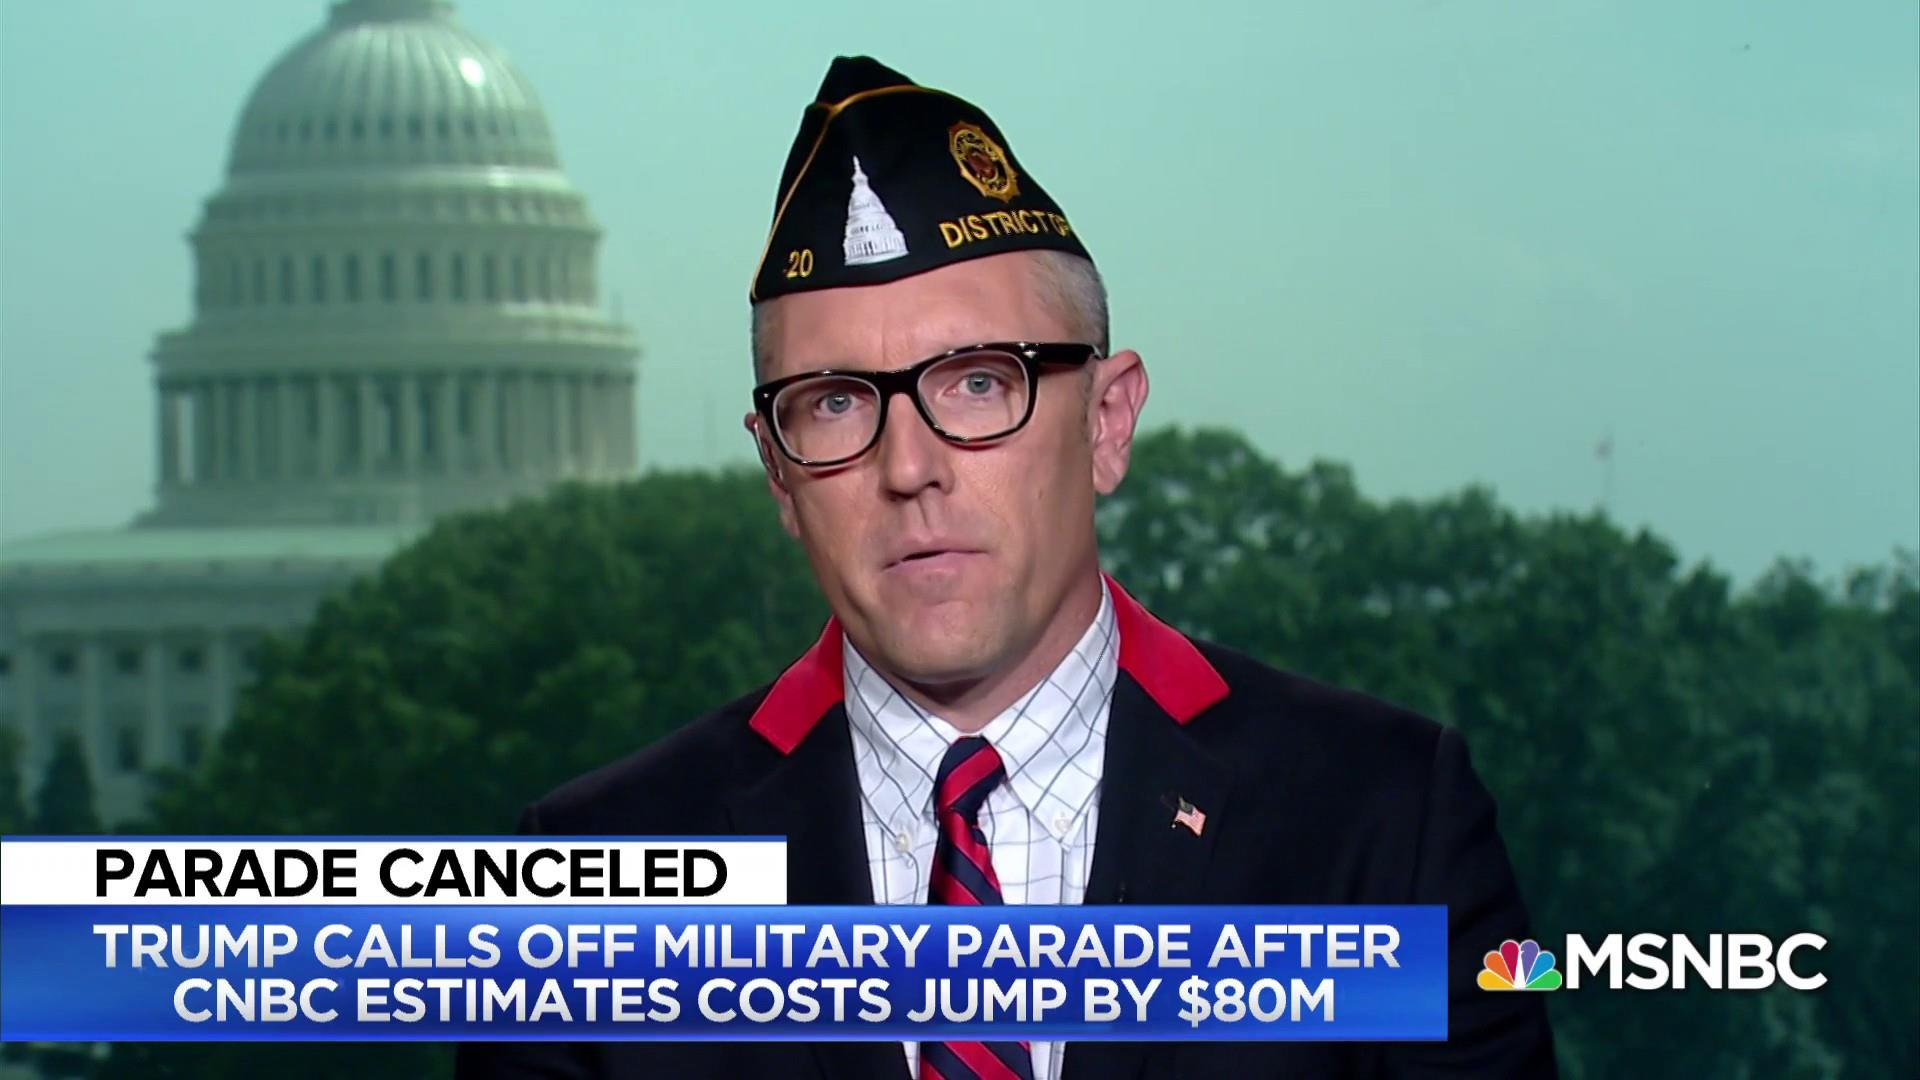 American Legion: Give funding for canceled parade to veterans